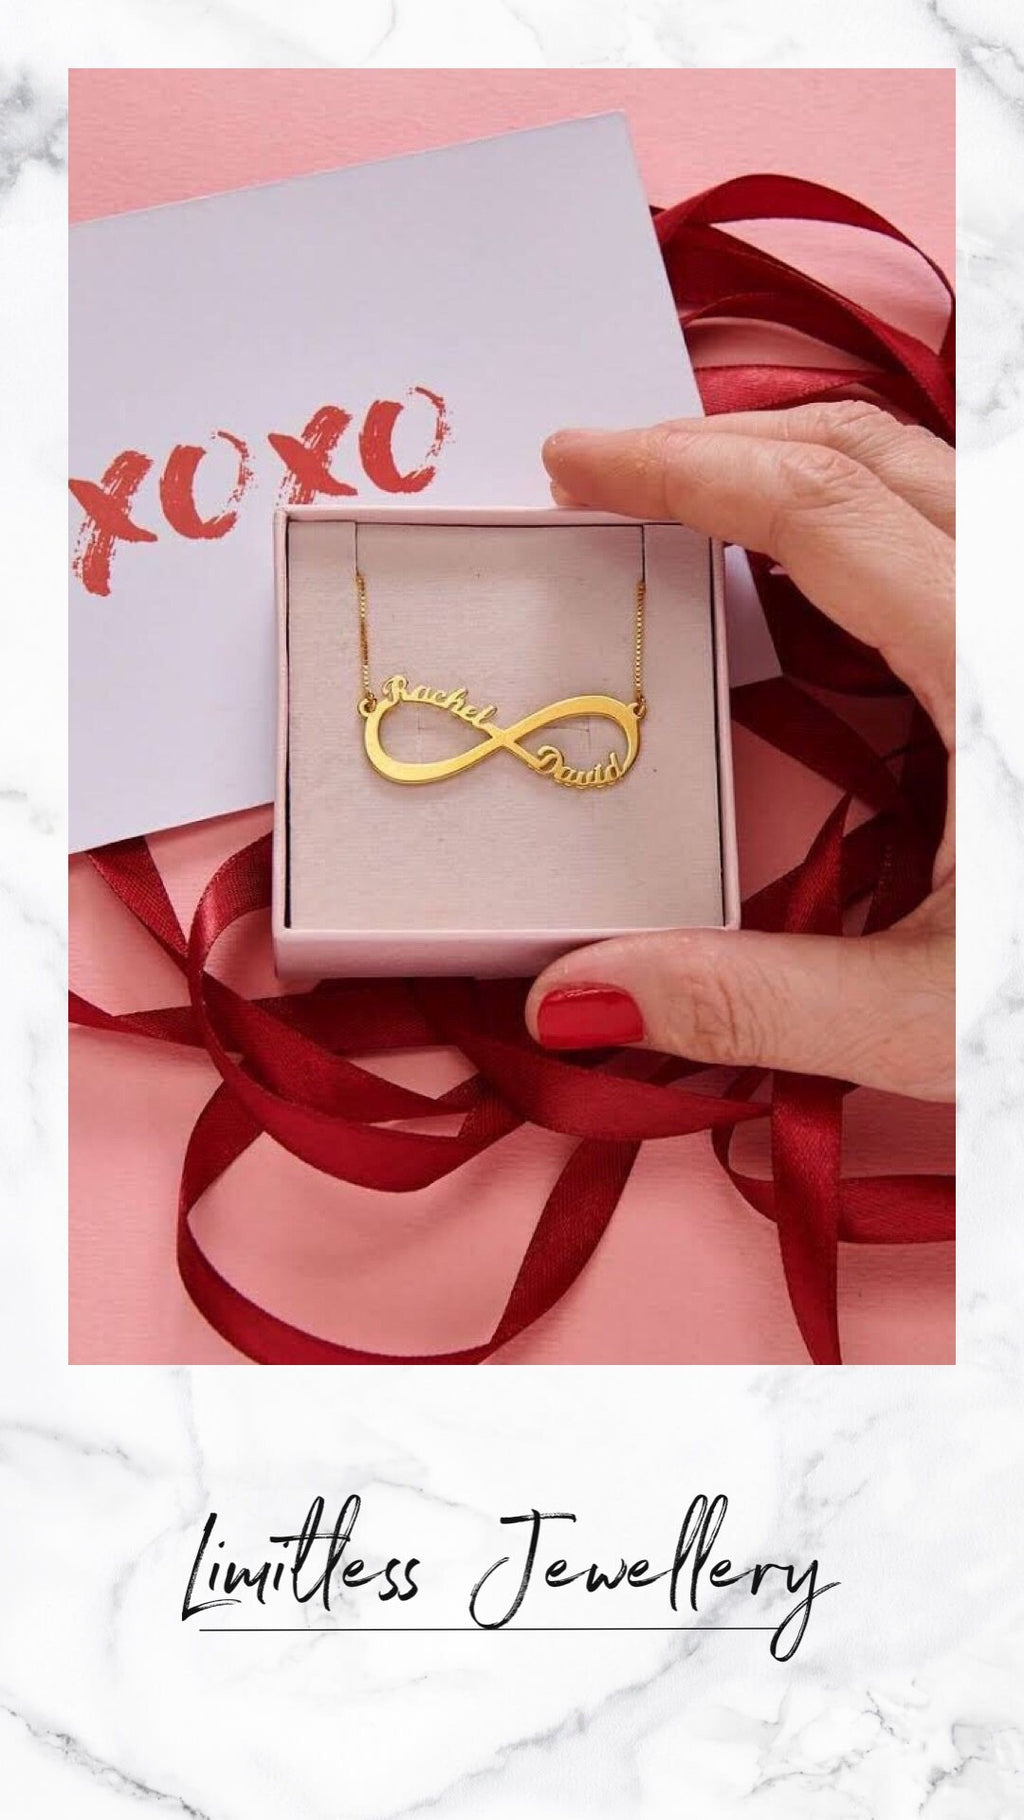 Personalized Infinity Name Necklace - Limitless Jewellery